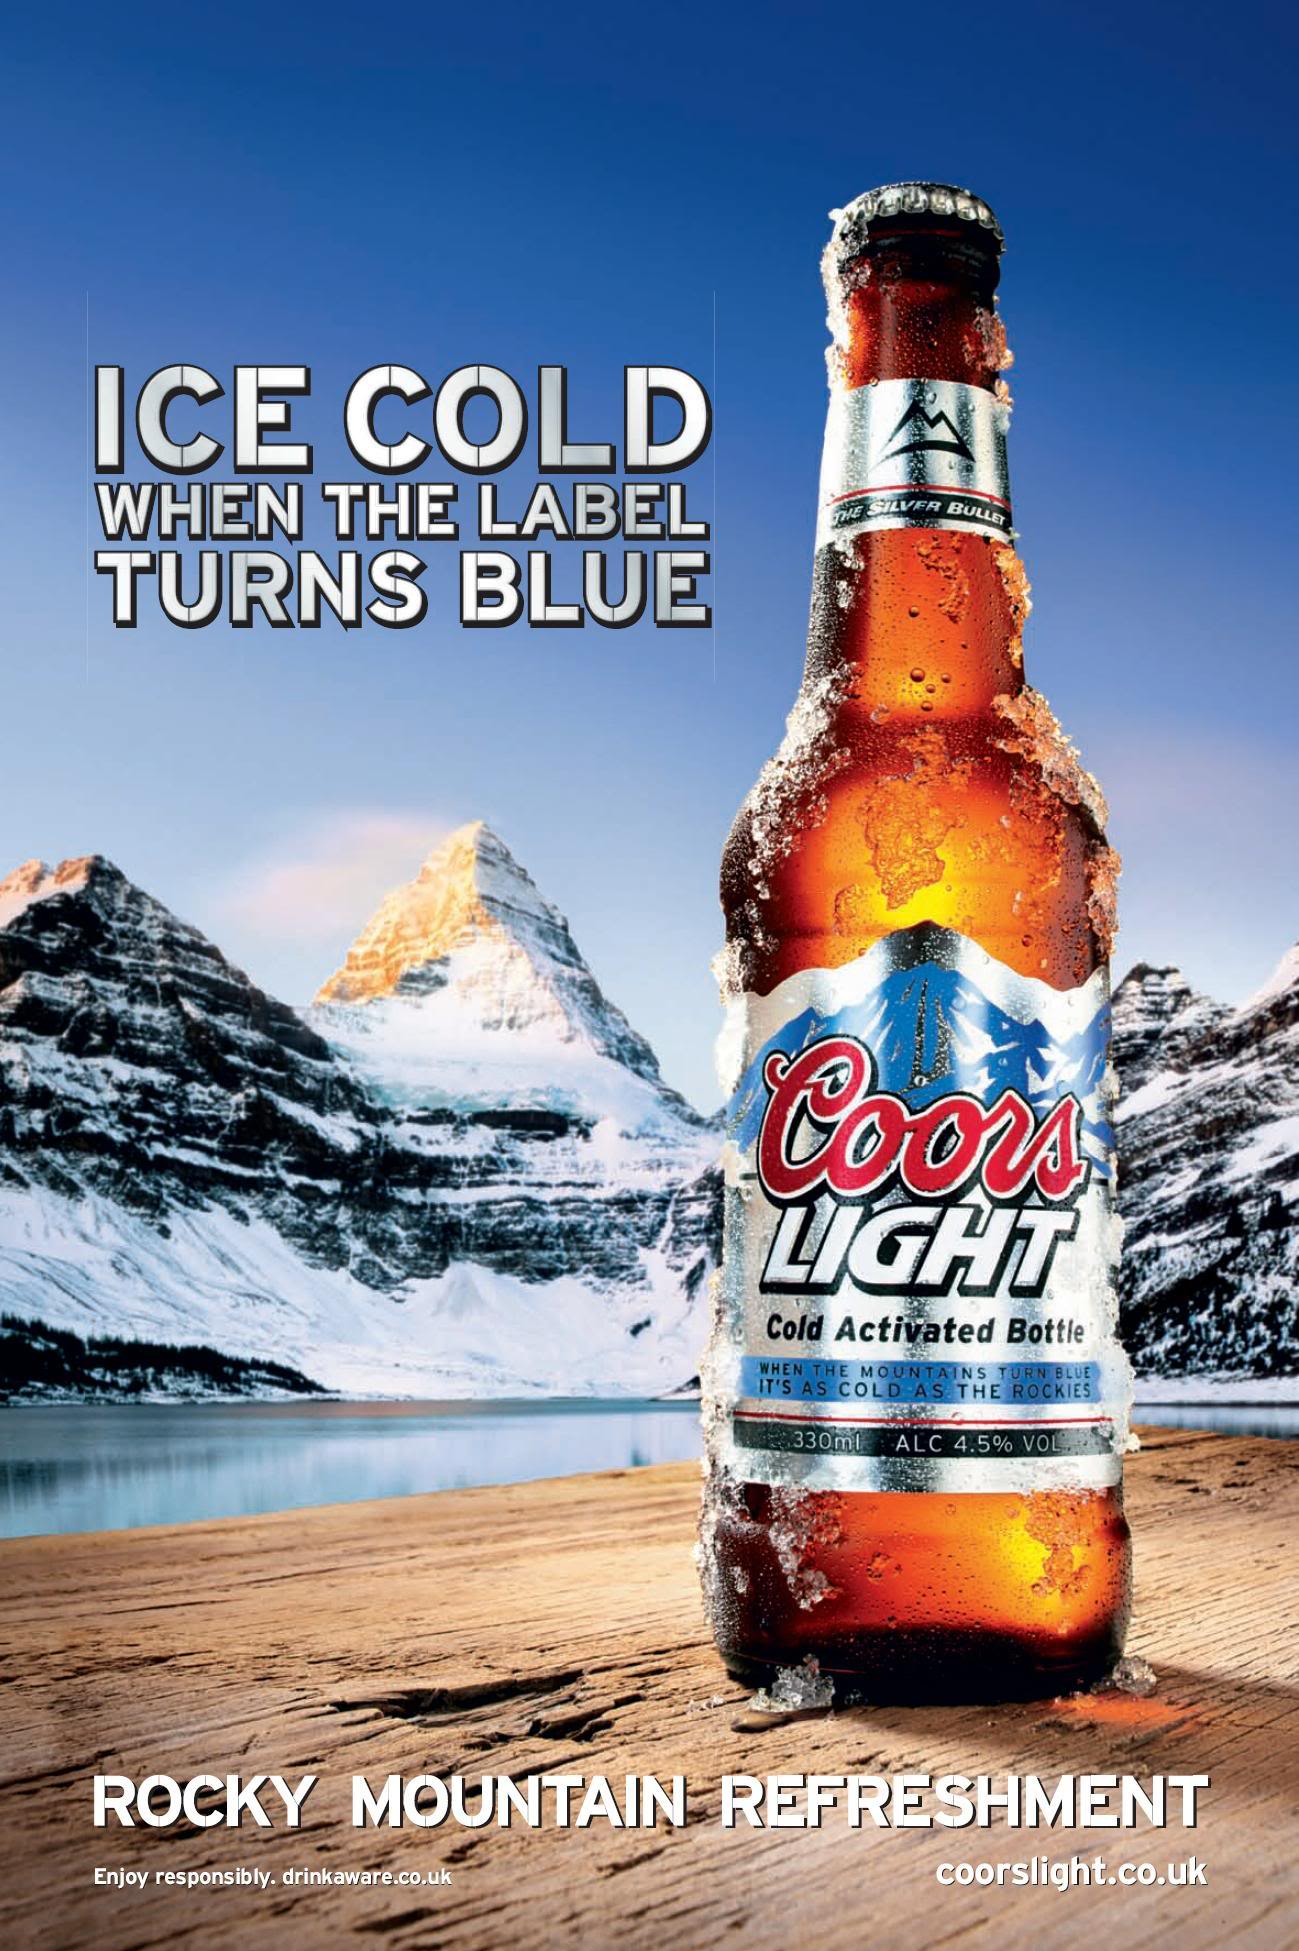 Red Bull Wallpaper Hd Iphone Coors Light Wallpapers High Quality Download Free